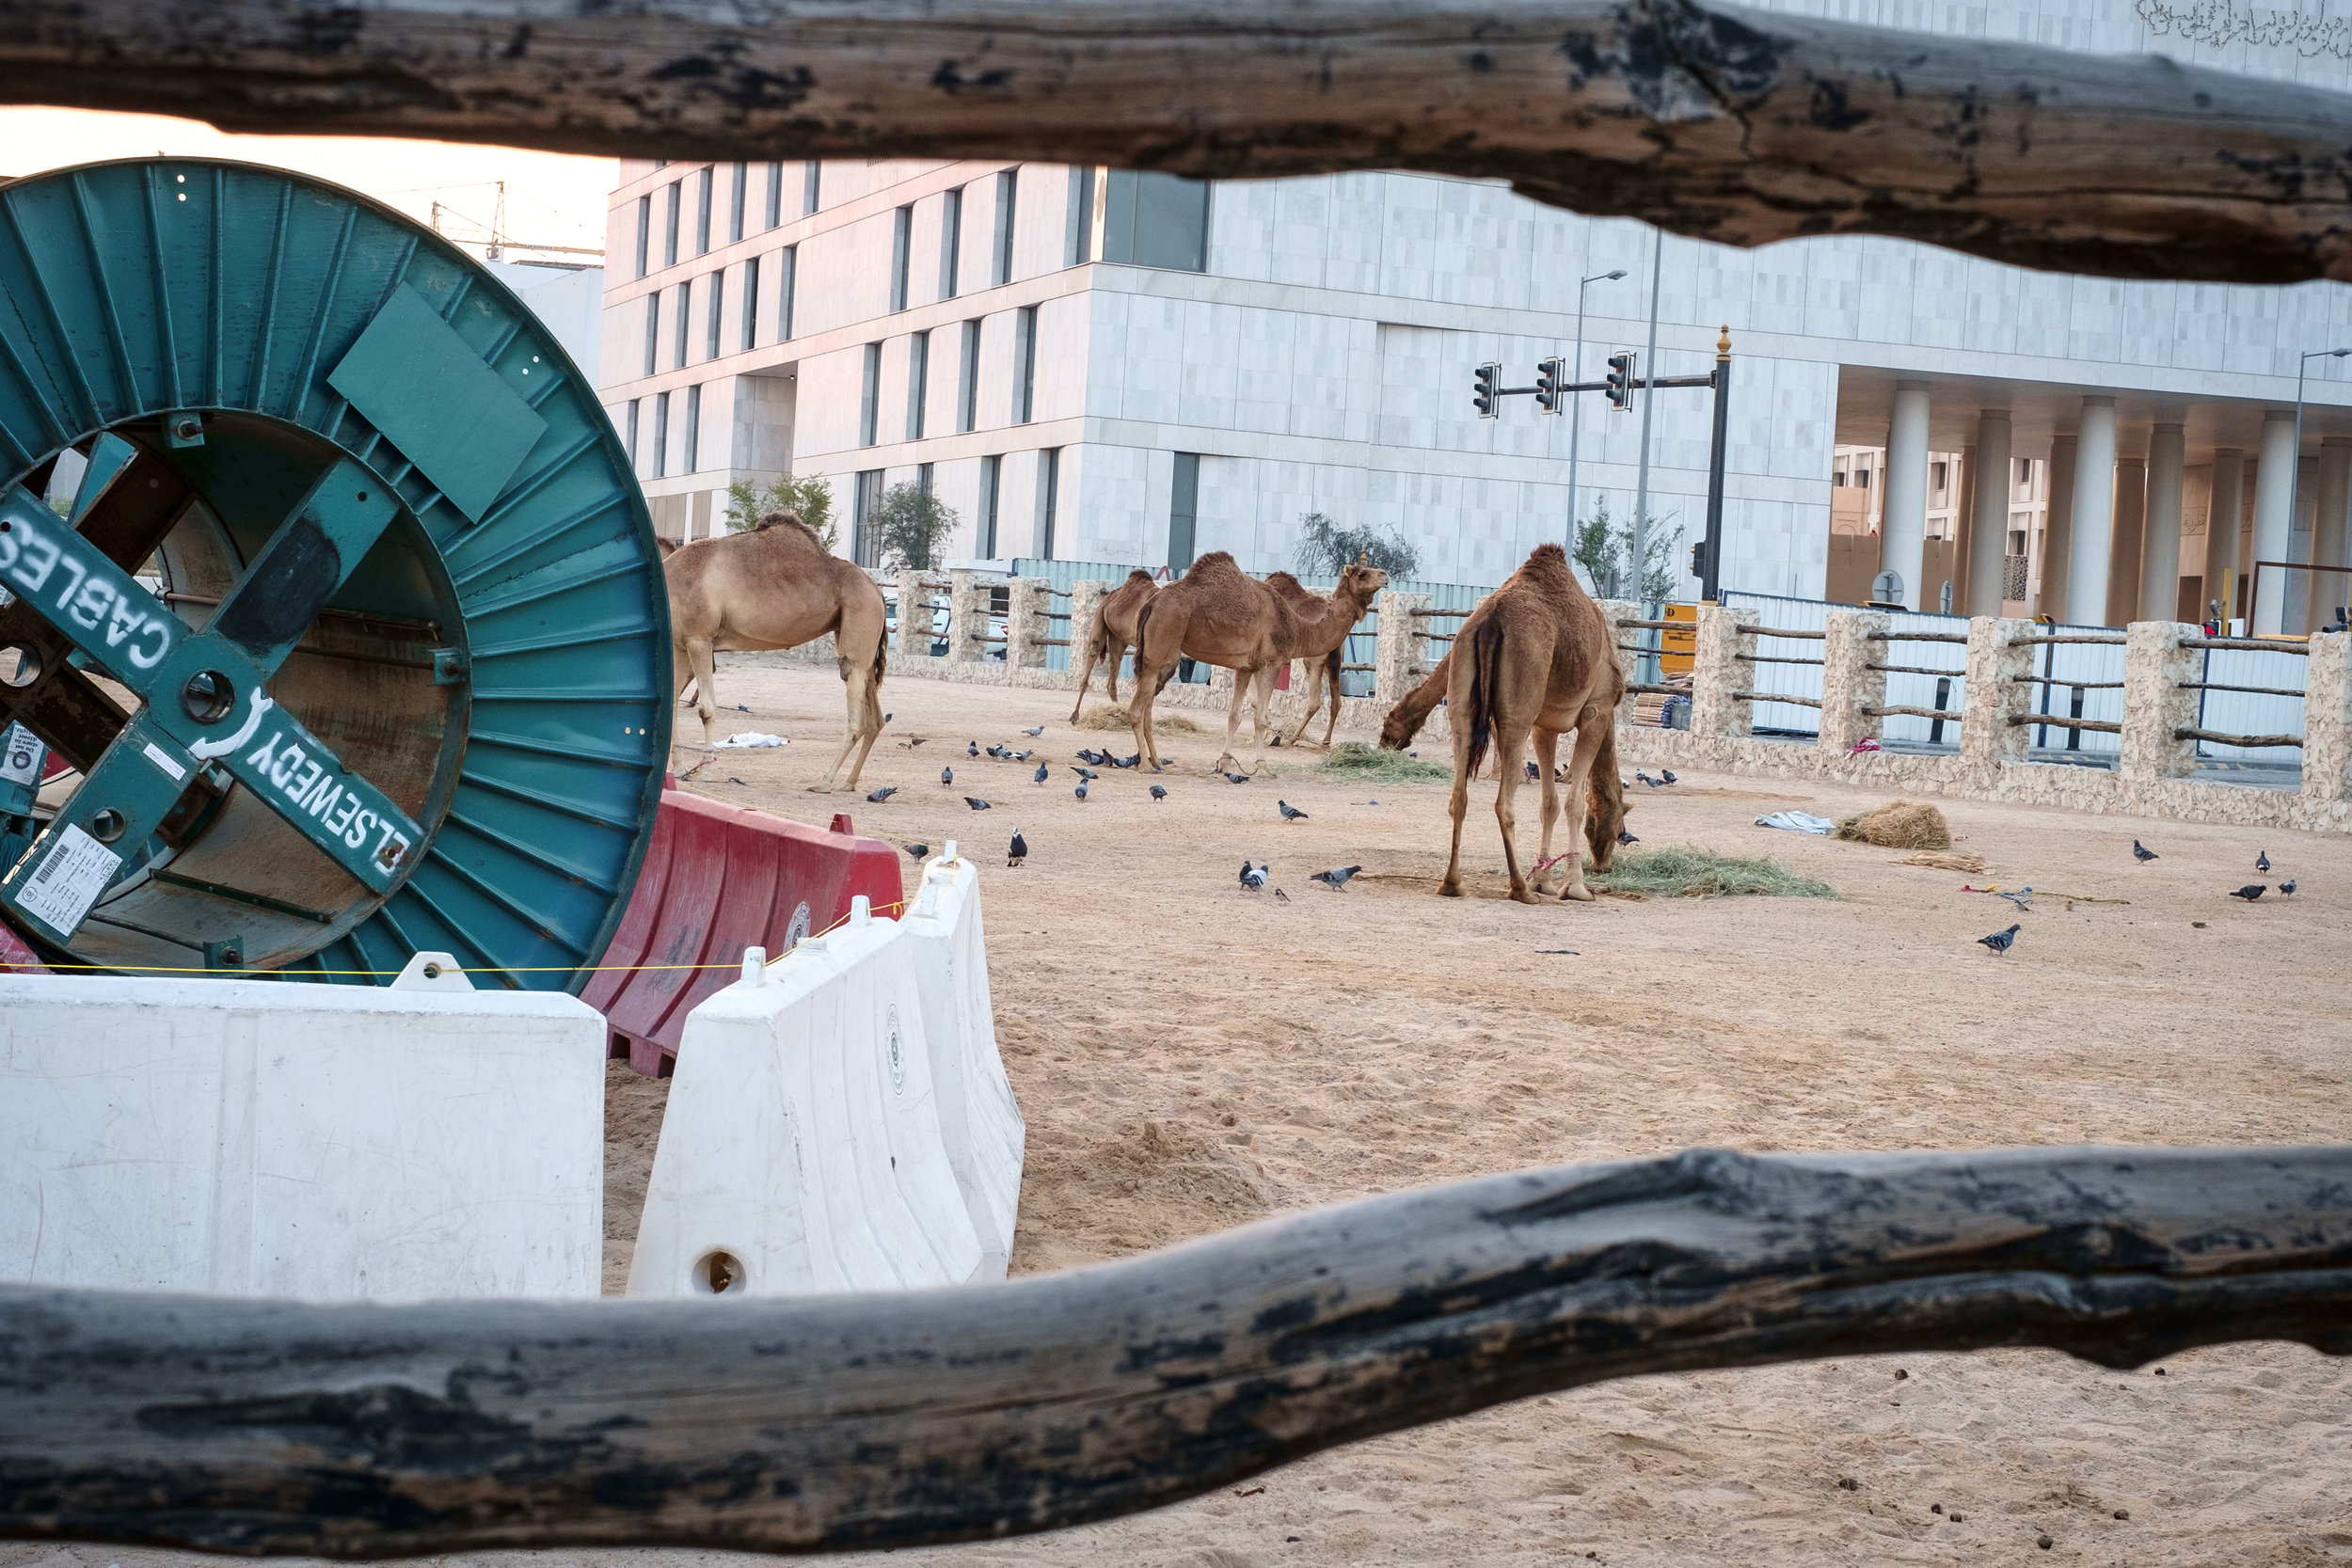 Part construction scene, part camel pen at Souq Waqif in Doha. Qatar is in a race to revitalize and modernize in time to host the 2022 FIFA World Cup.